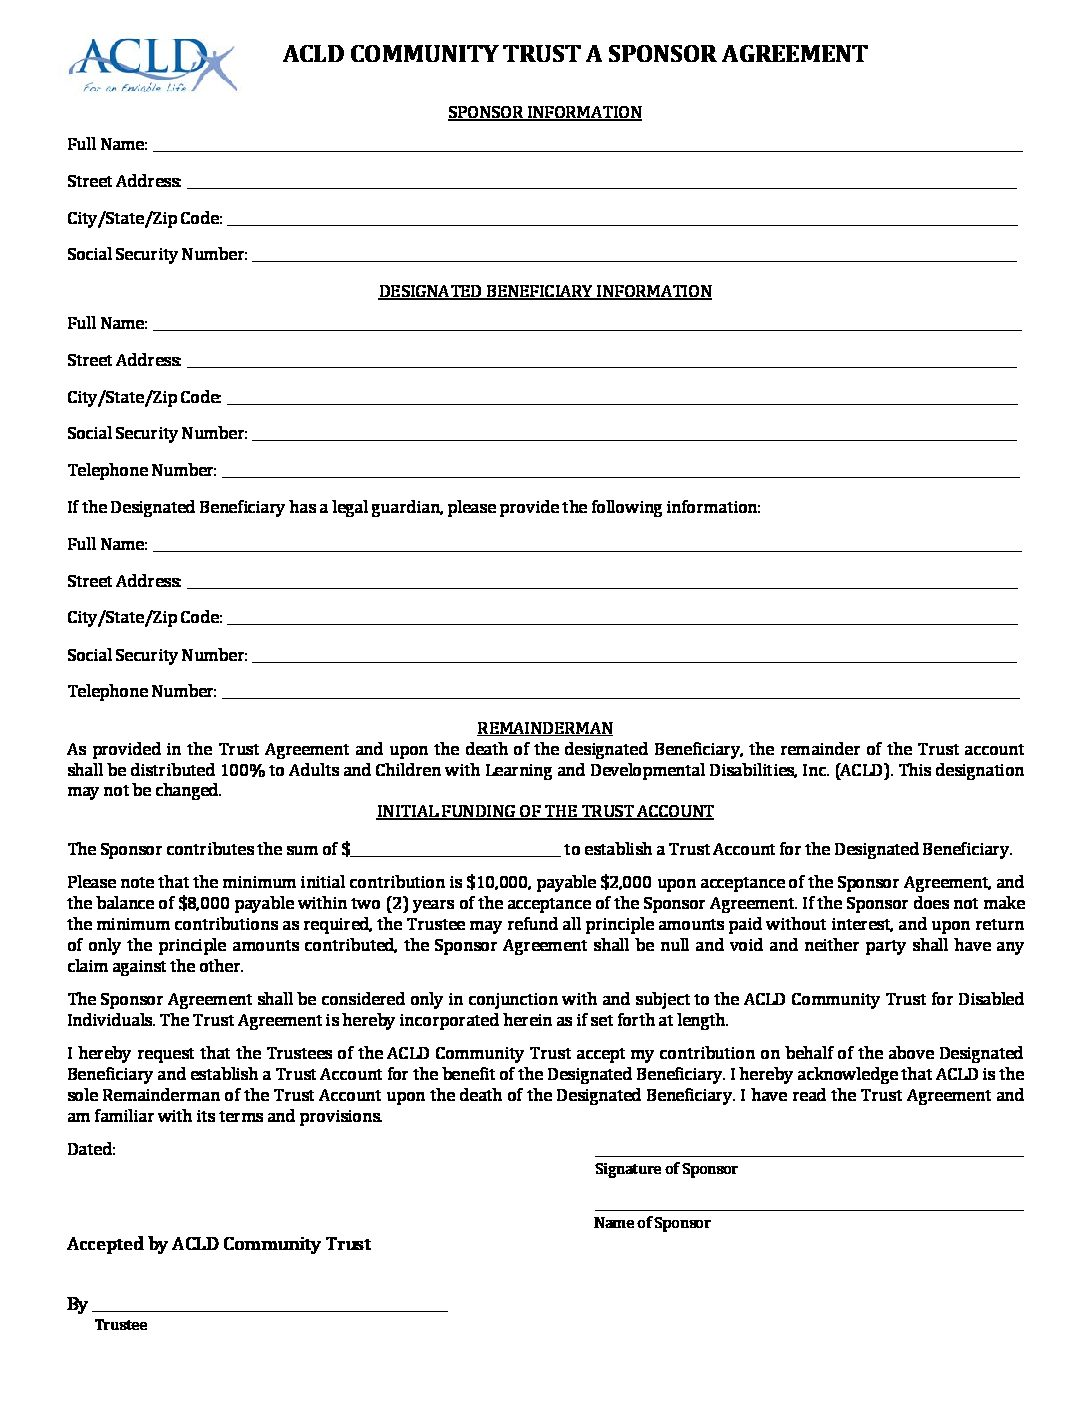 Trust A Joinder Agreement Adults And Children With Learning